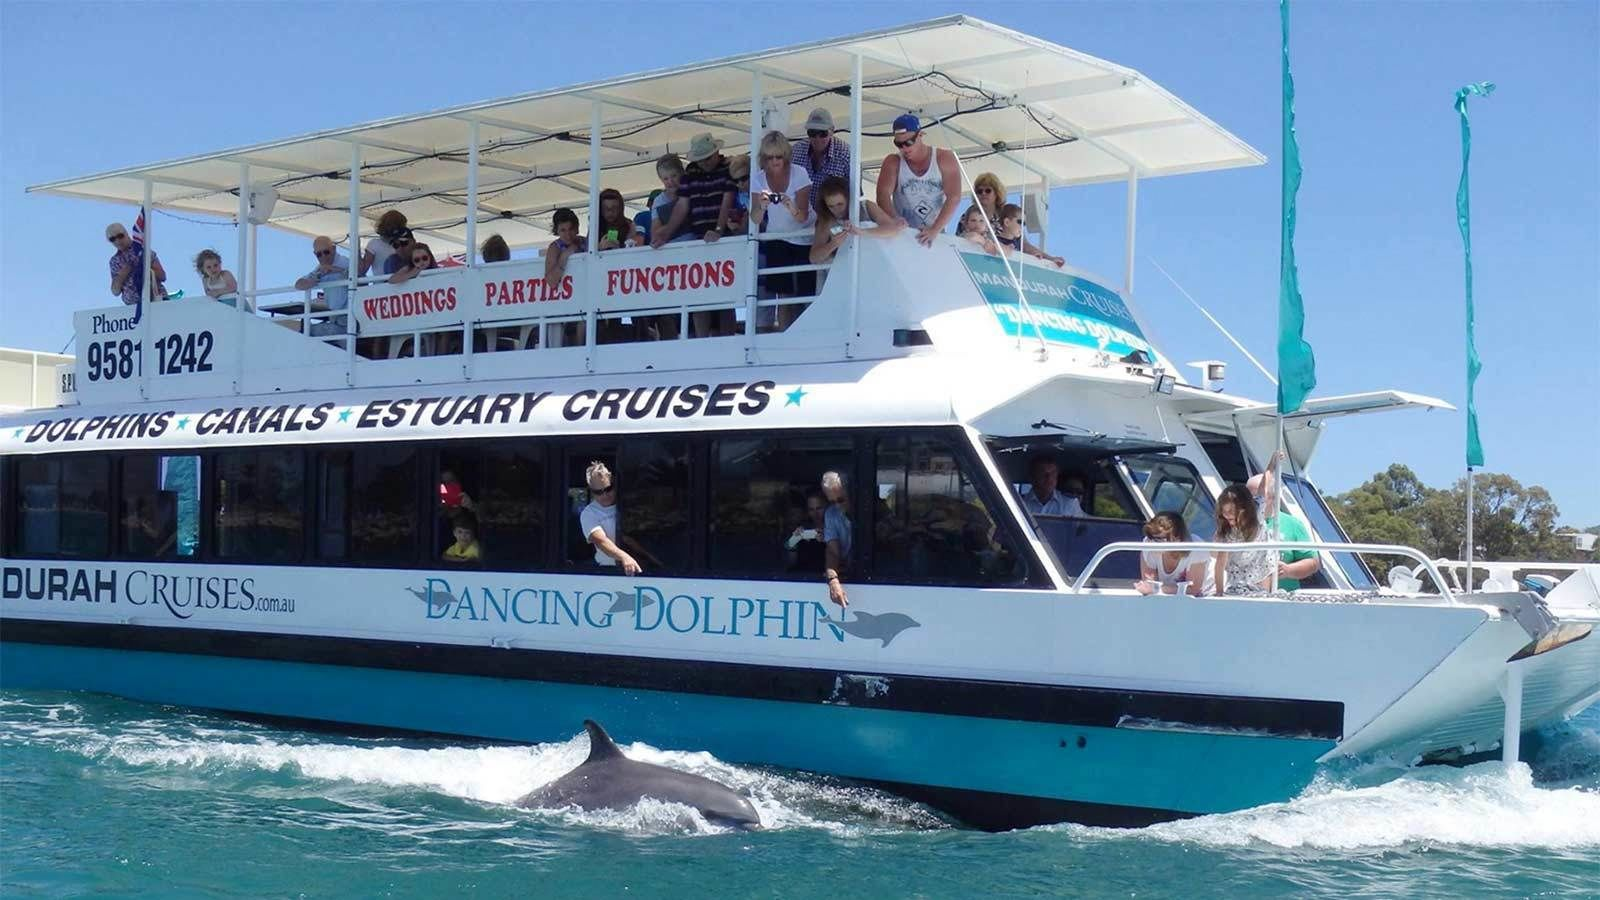 Side view of the Dancing Dolphin cruise boat in Perth, Australia